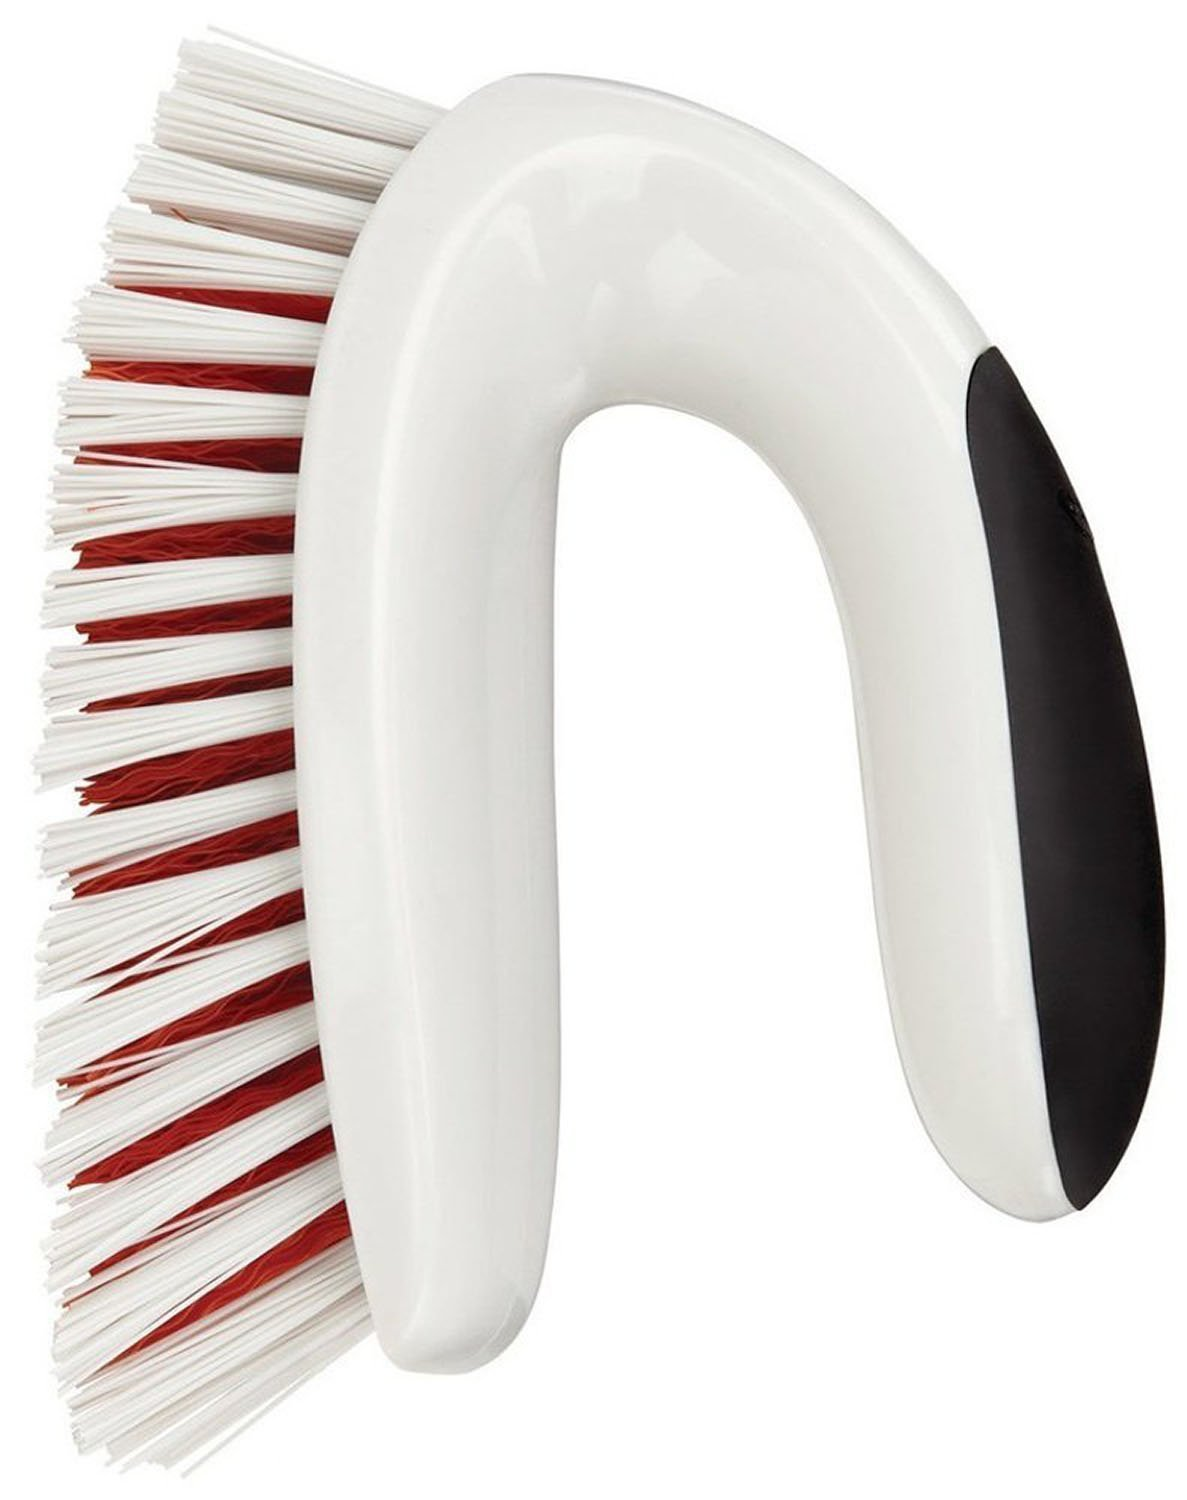 Handheld bathroom tub scrubbers are easy to maintain